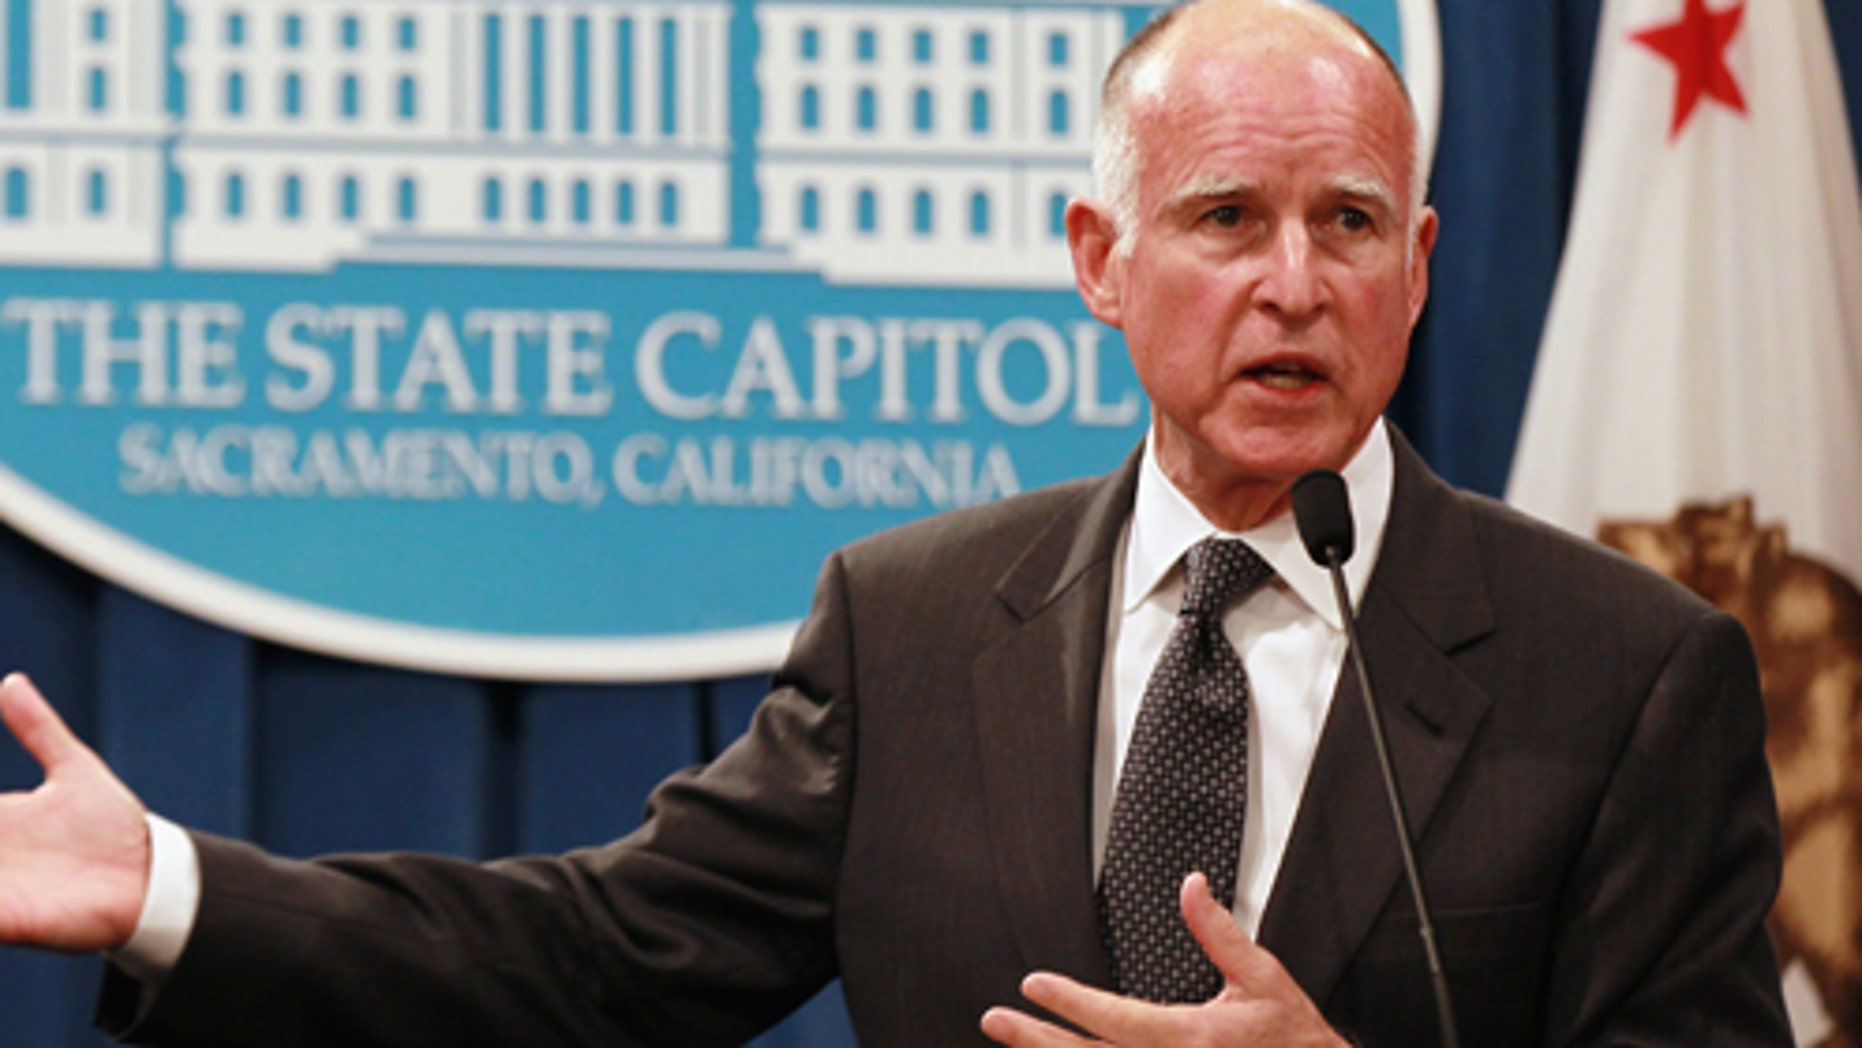 JANUARY 10:  California Governor Jerry Brown speaks to reporters as he announces his proposed budget at the California State Capitol on January 10, 2011 in Sacramento, California. (Photo by Justin Sullivan/Getty Images)